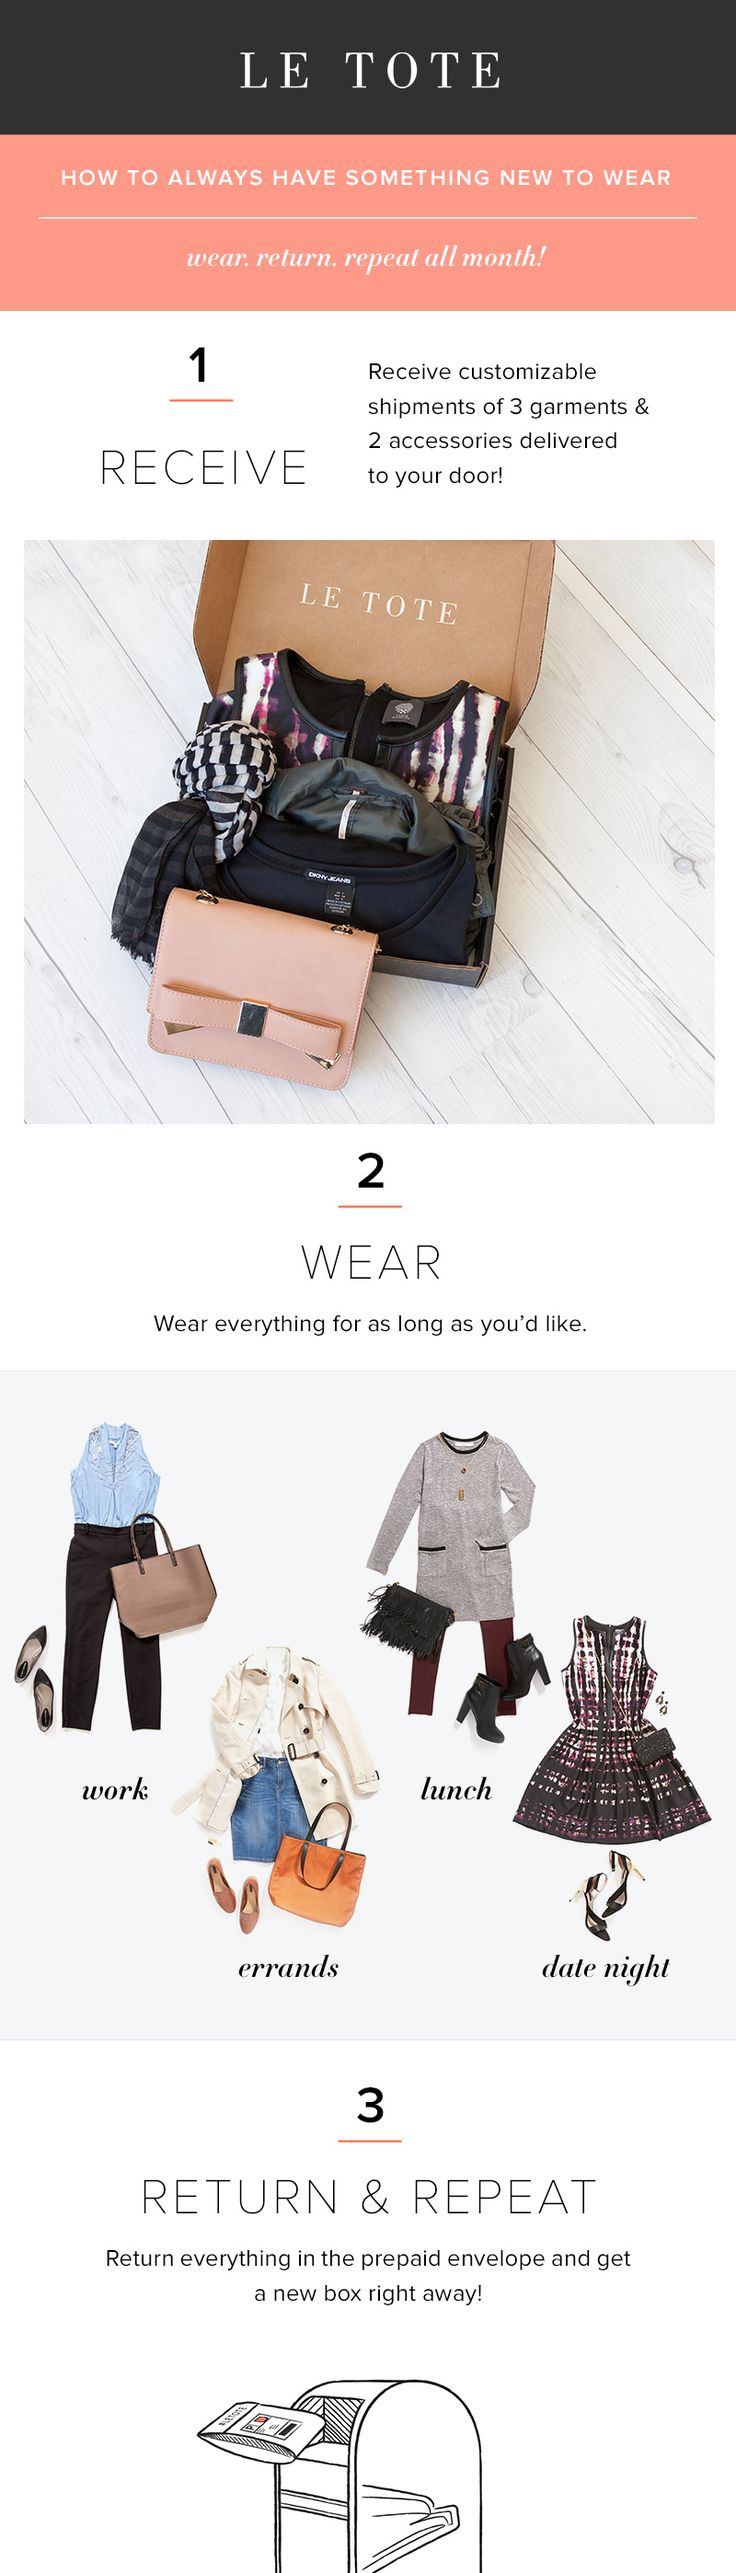 Ready for your fall wardrobe? Try Le Tote for $59/month and get 3 garments and 2 accessories delivered to your door - unlimited times each month. Wear everything. Send it back. Receive your next set of options days later! Who wouldn't want to always have something new to wear?